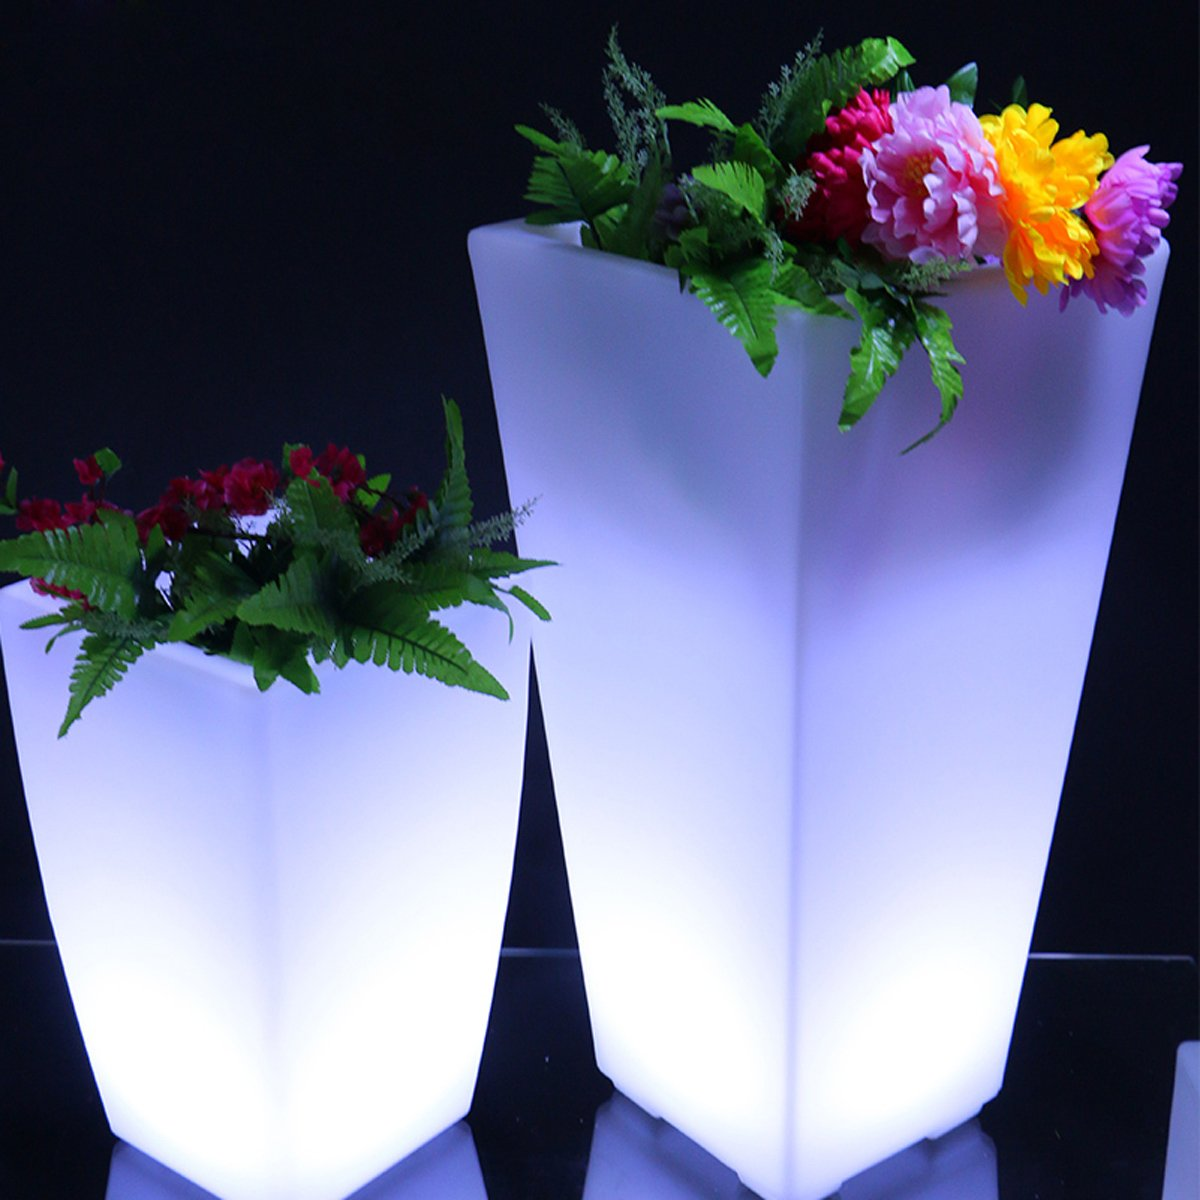 Wireless Outdoor Flower Pot With Led Lighting Landscape Hotel Restaurant Decorative Lighting by IVER